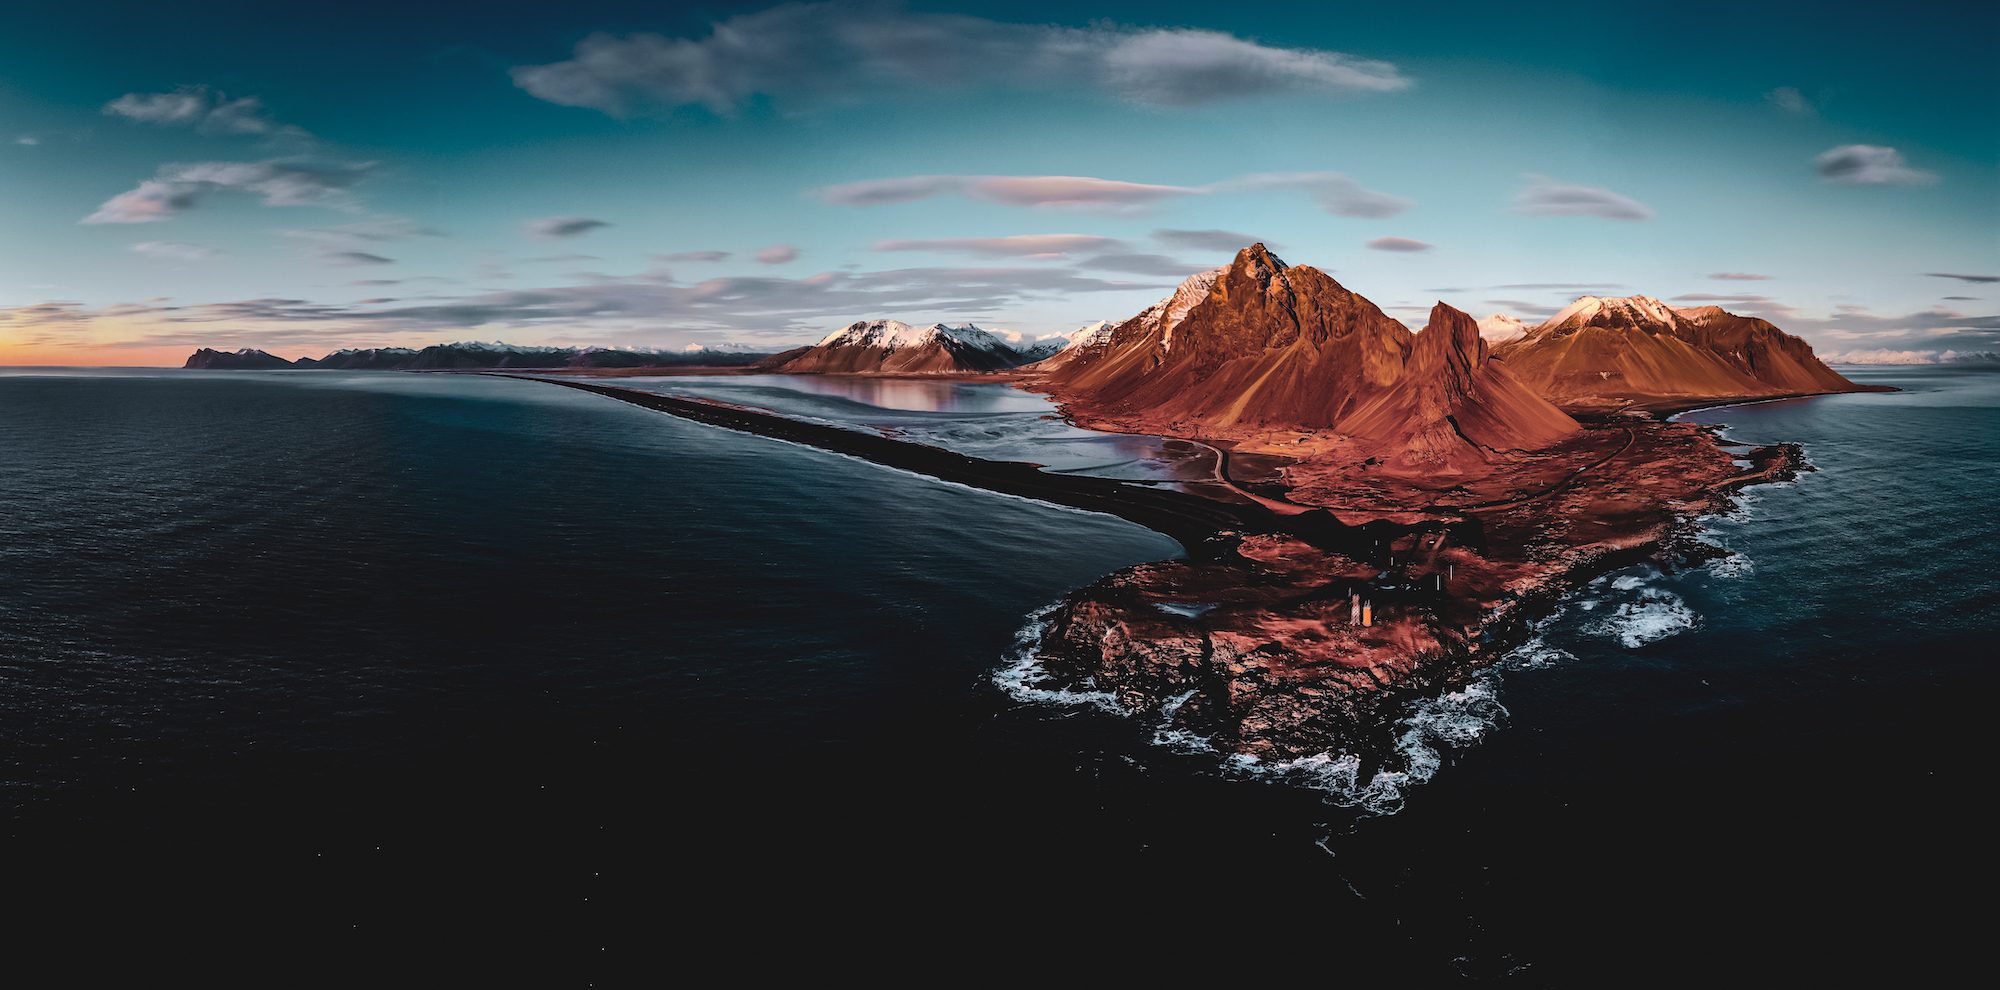 Full panorama of East Iceland coast with lighthouse, captured by drone during winter low sun